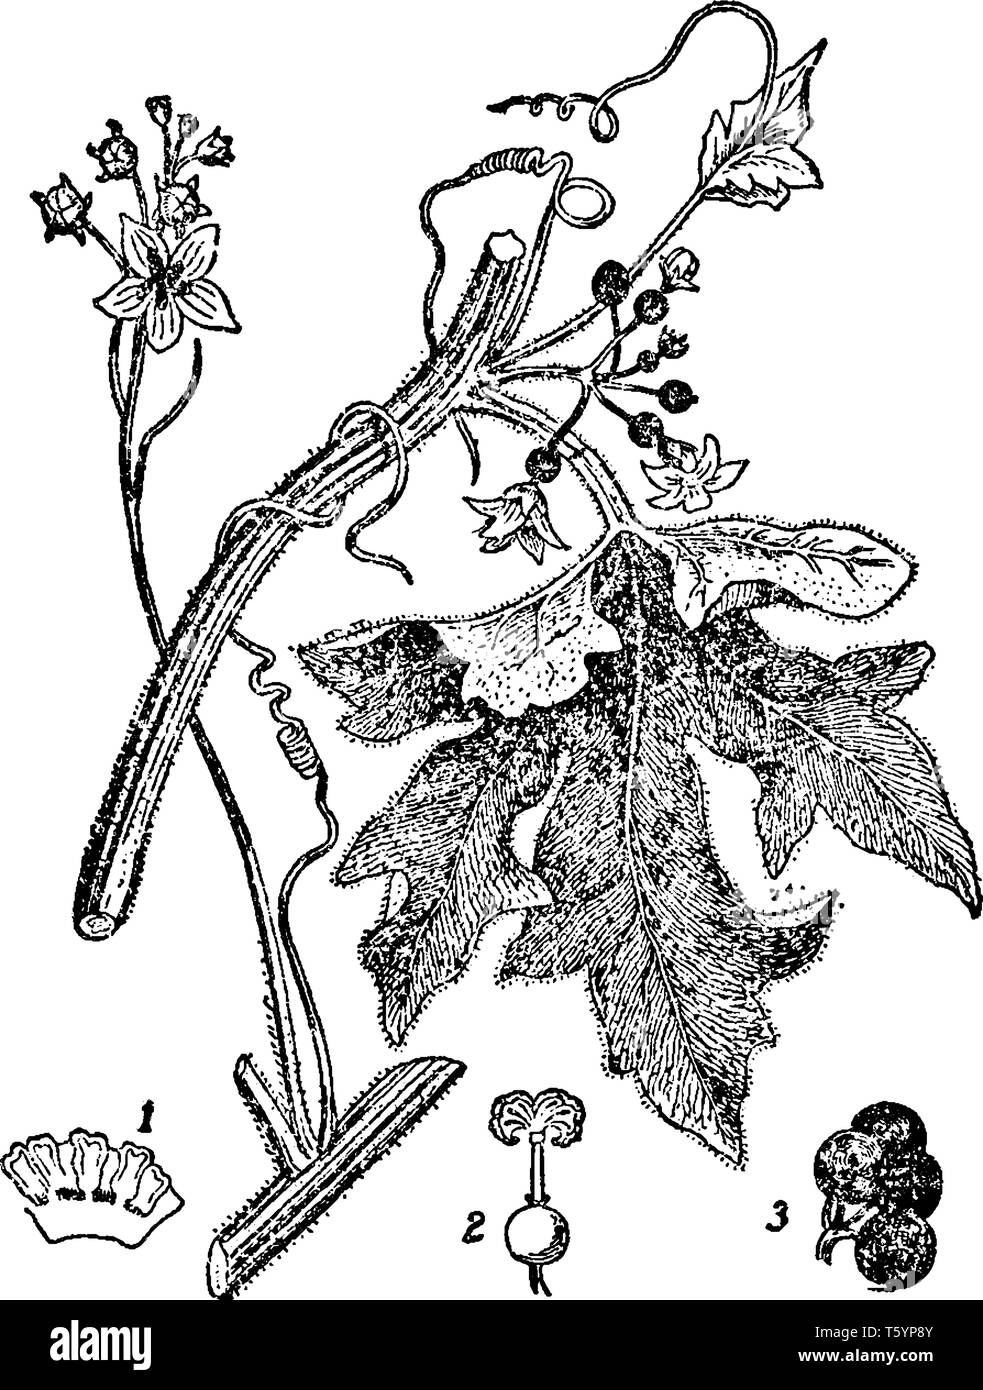 The bryony is a climbing vine, bryony is thorny and hairy. There are some lobed leaves, flowers, bud and seed, vintage line drawing or engraving illus - Stock Image